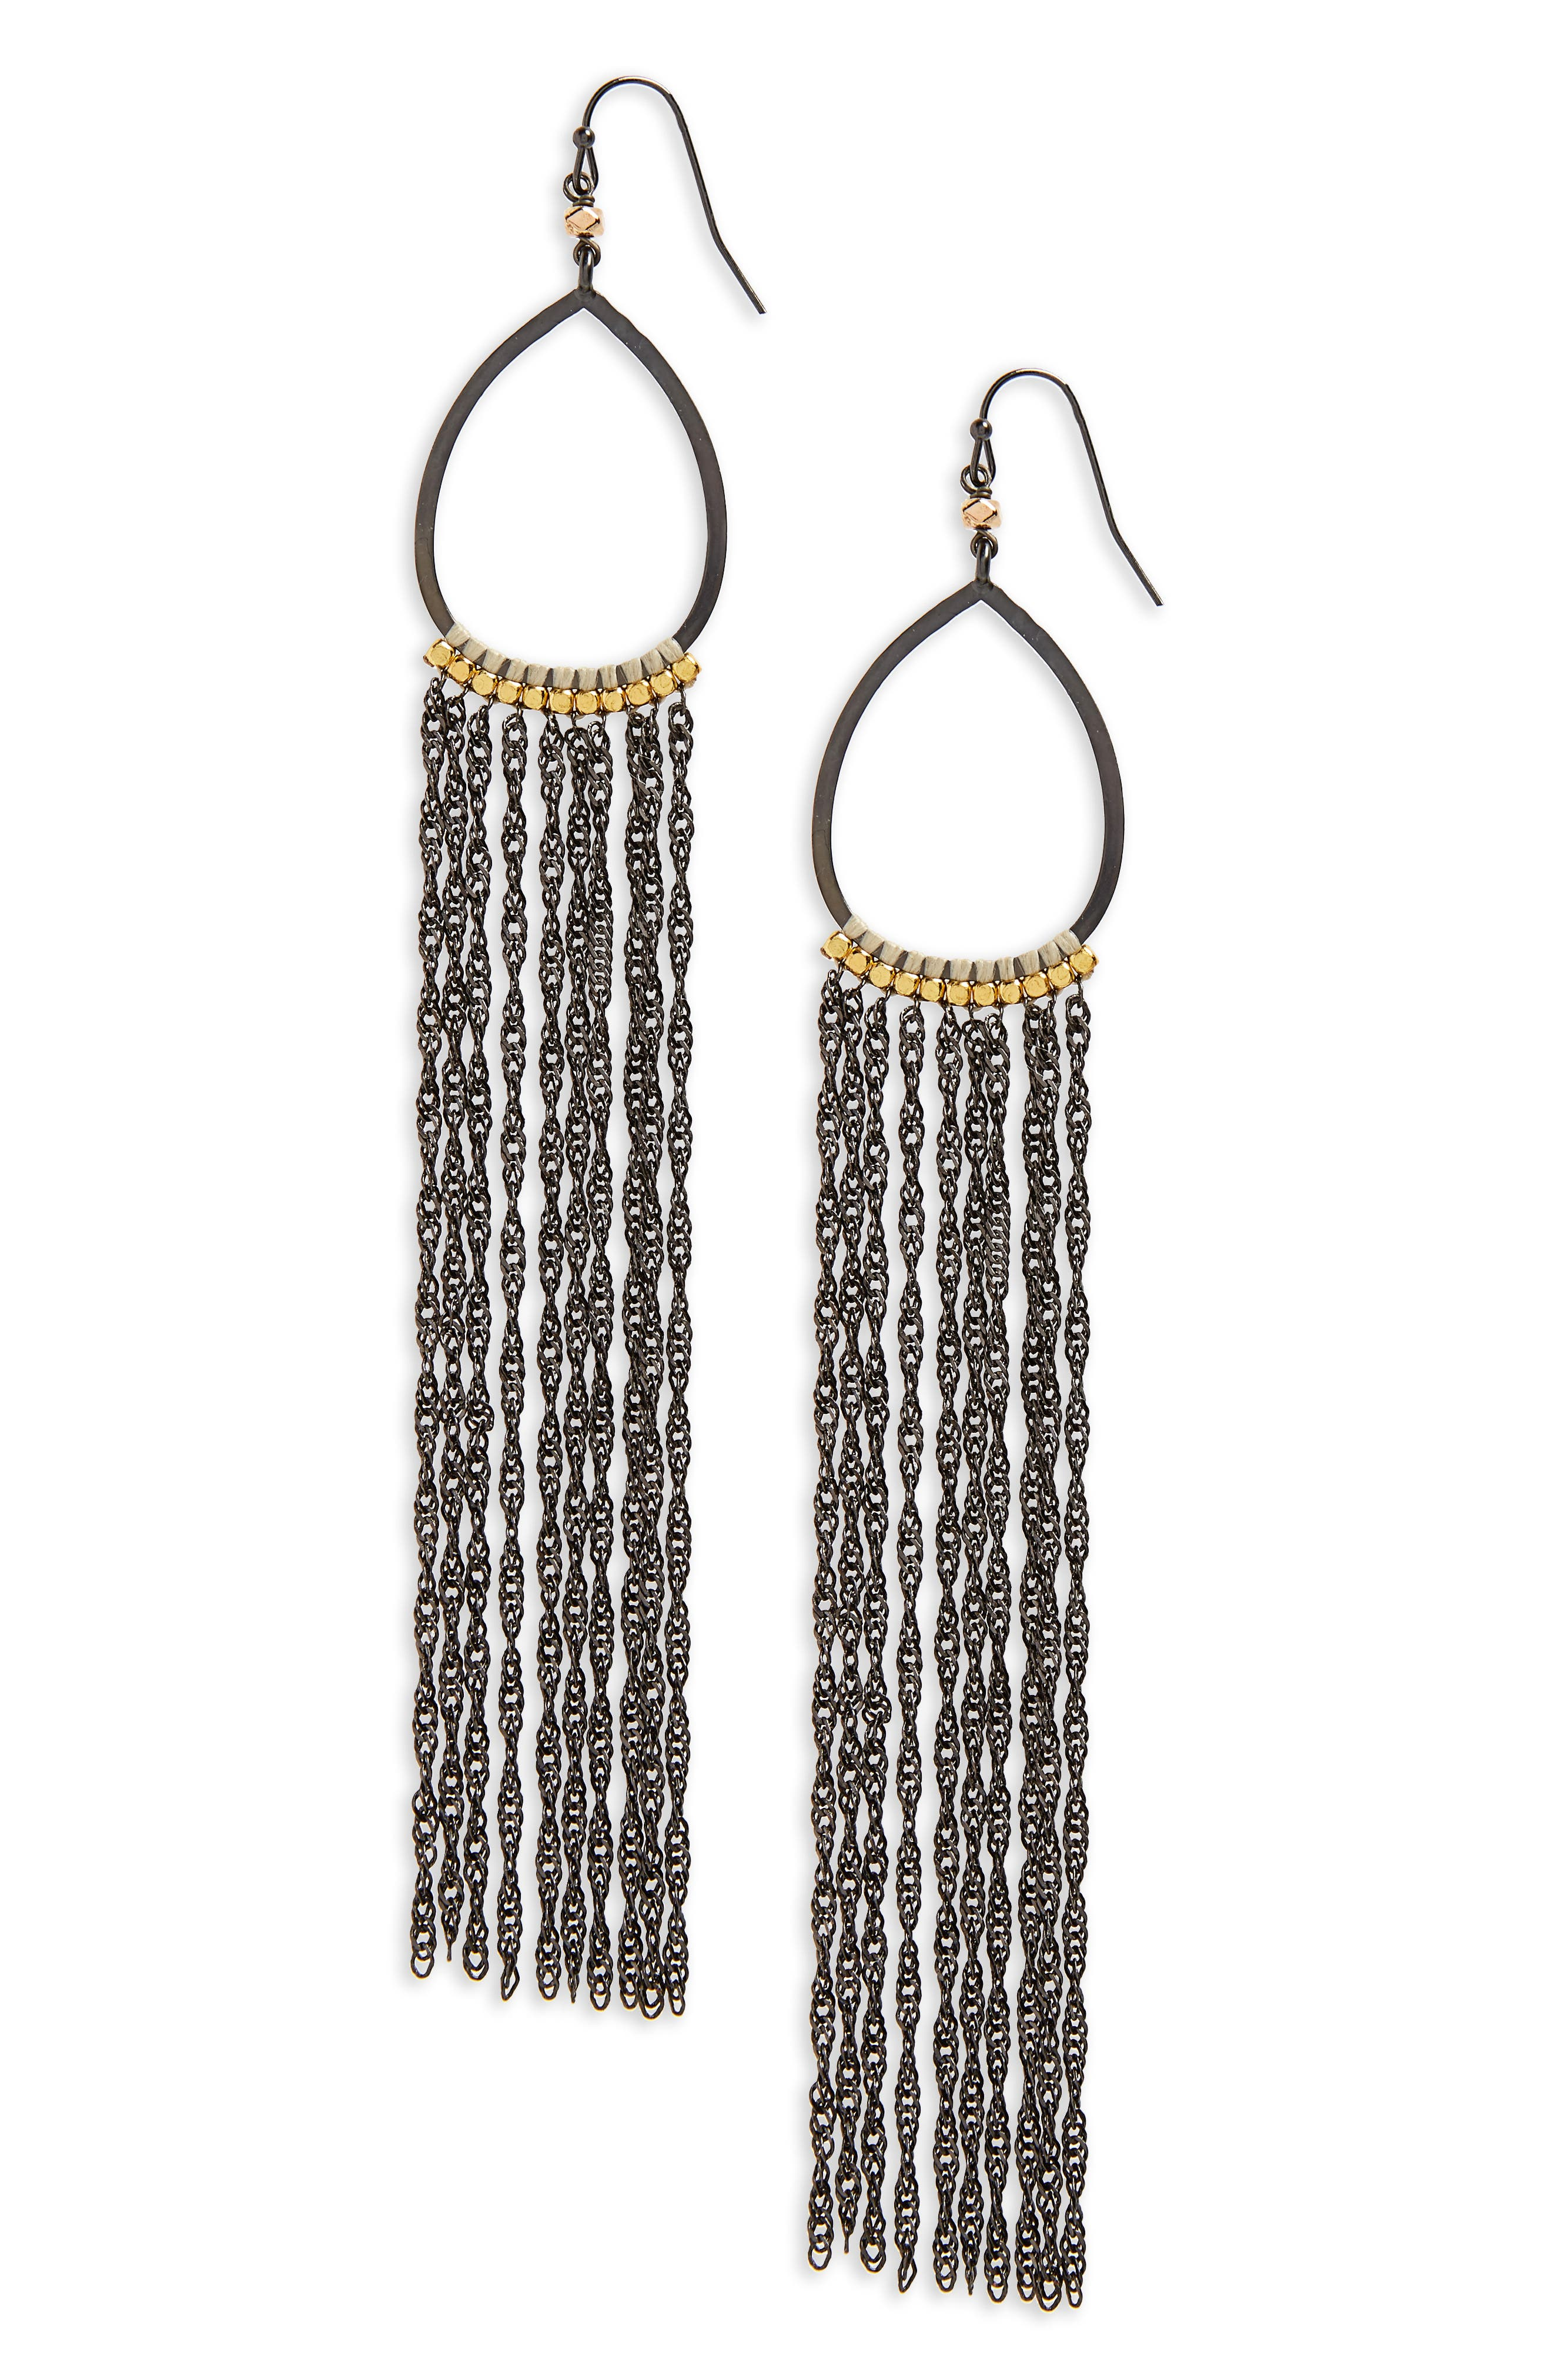 Extra Long Chain Fringe Earrings,                         Main,                         color,